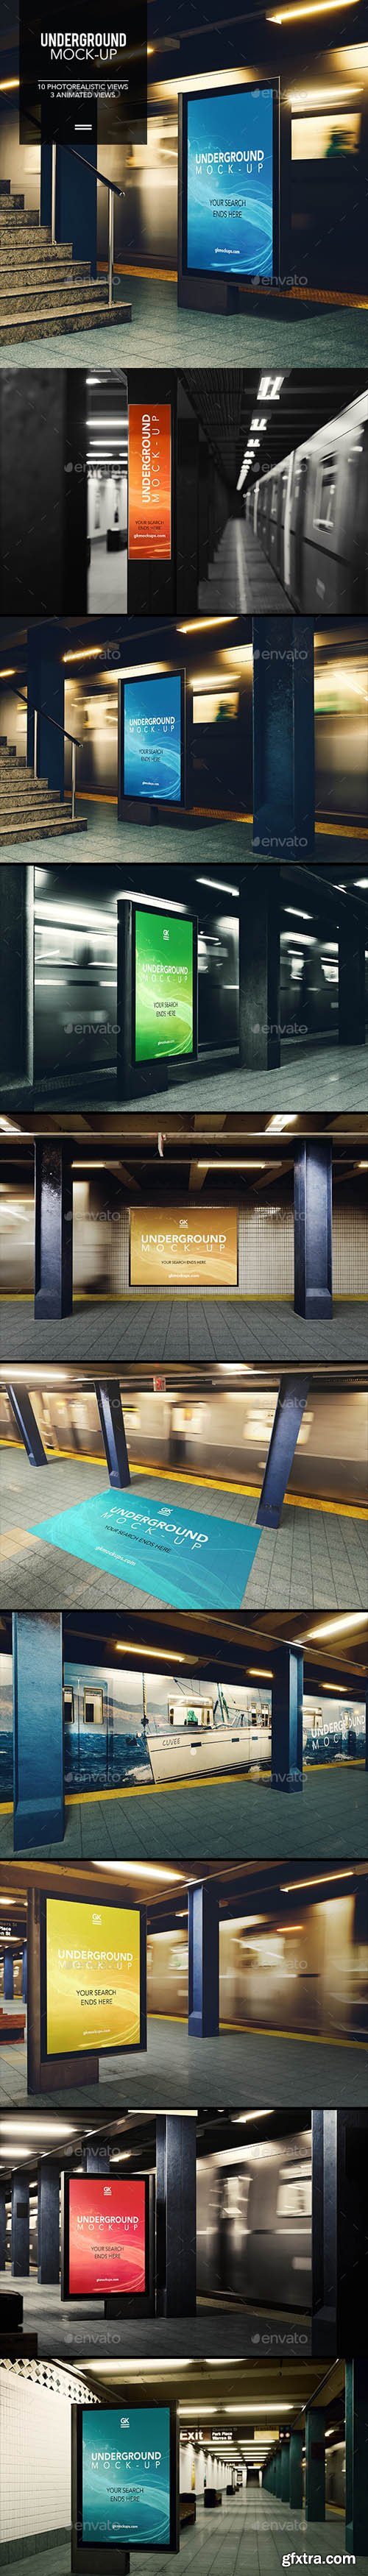 Graphicriver - 3D Underground / Subway Mock-up / Animated Edition 18420854